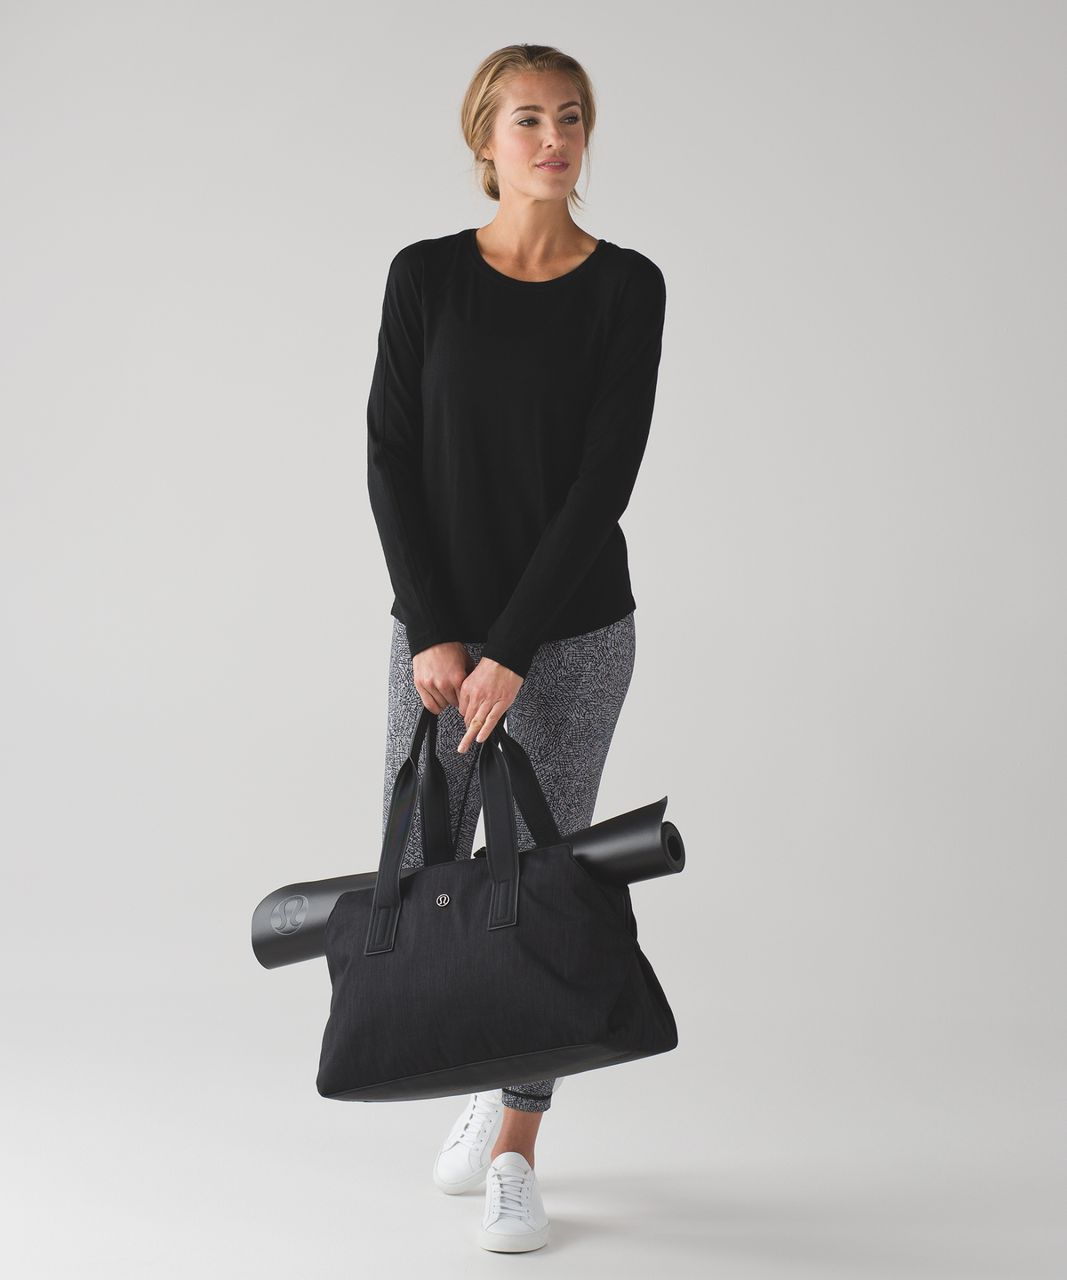 Lululemon No Chill Long Sleeve - Black